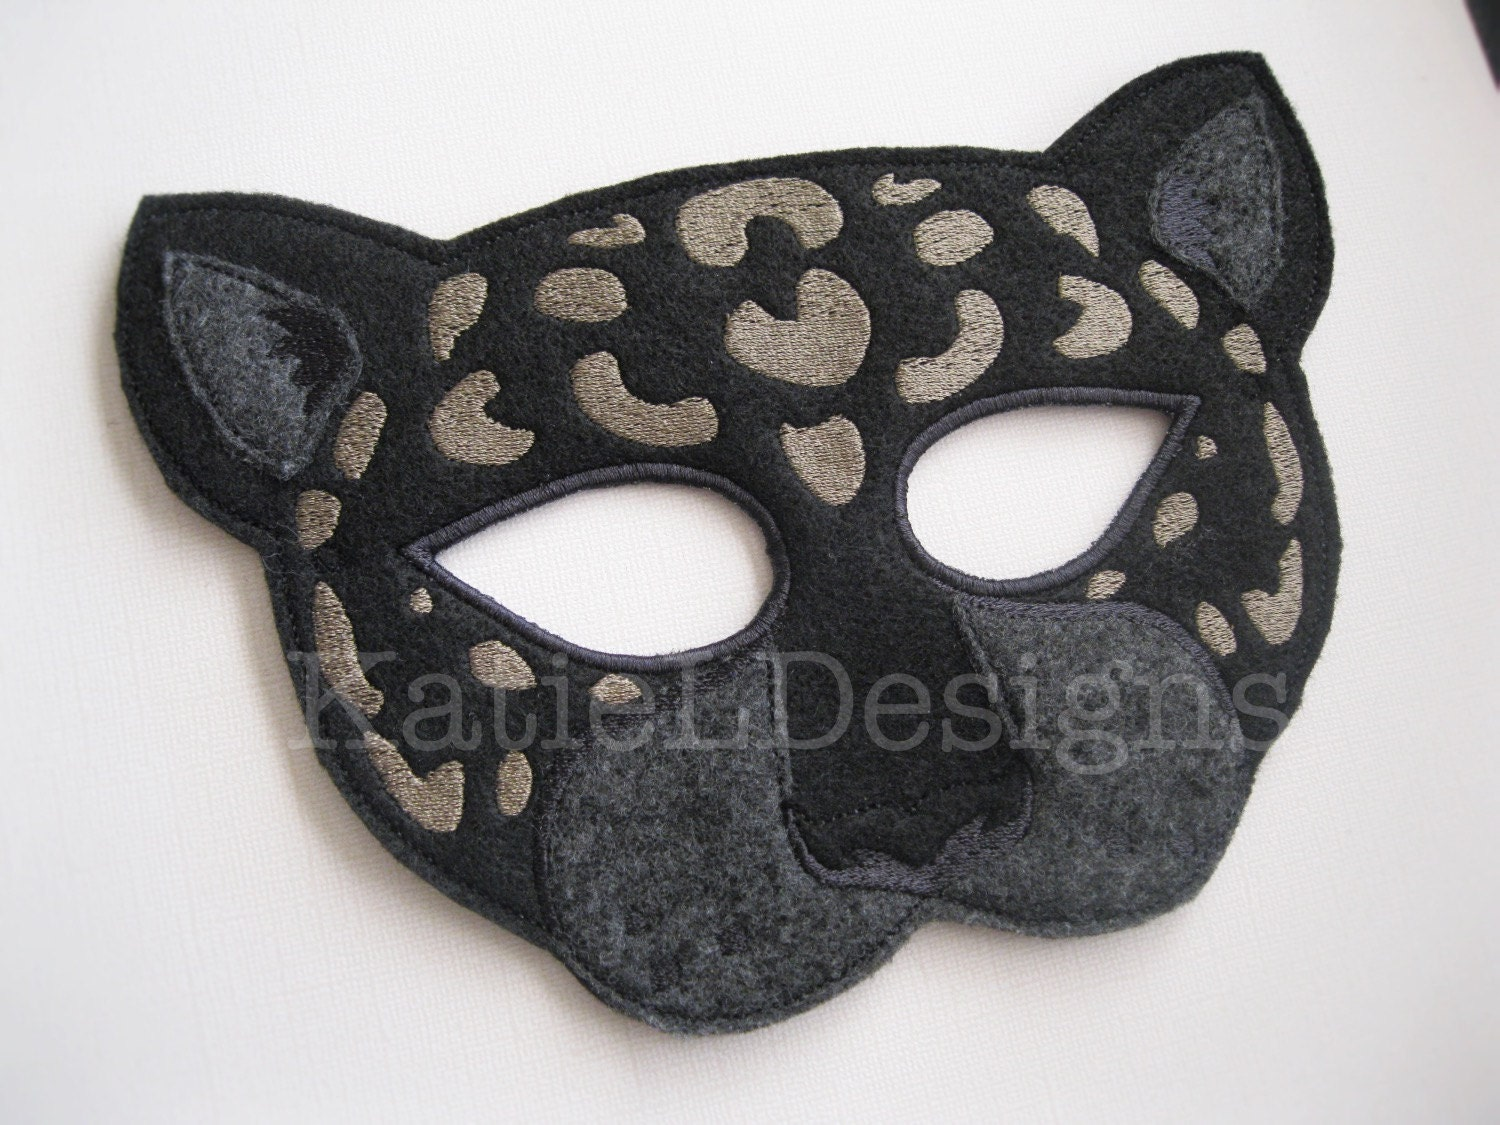 ITH Jaguar Mask Machine Embroidery Design Pattern Download 5x7 ...